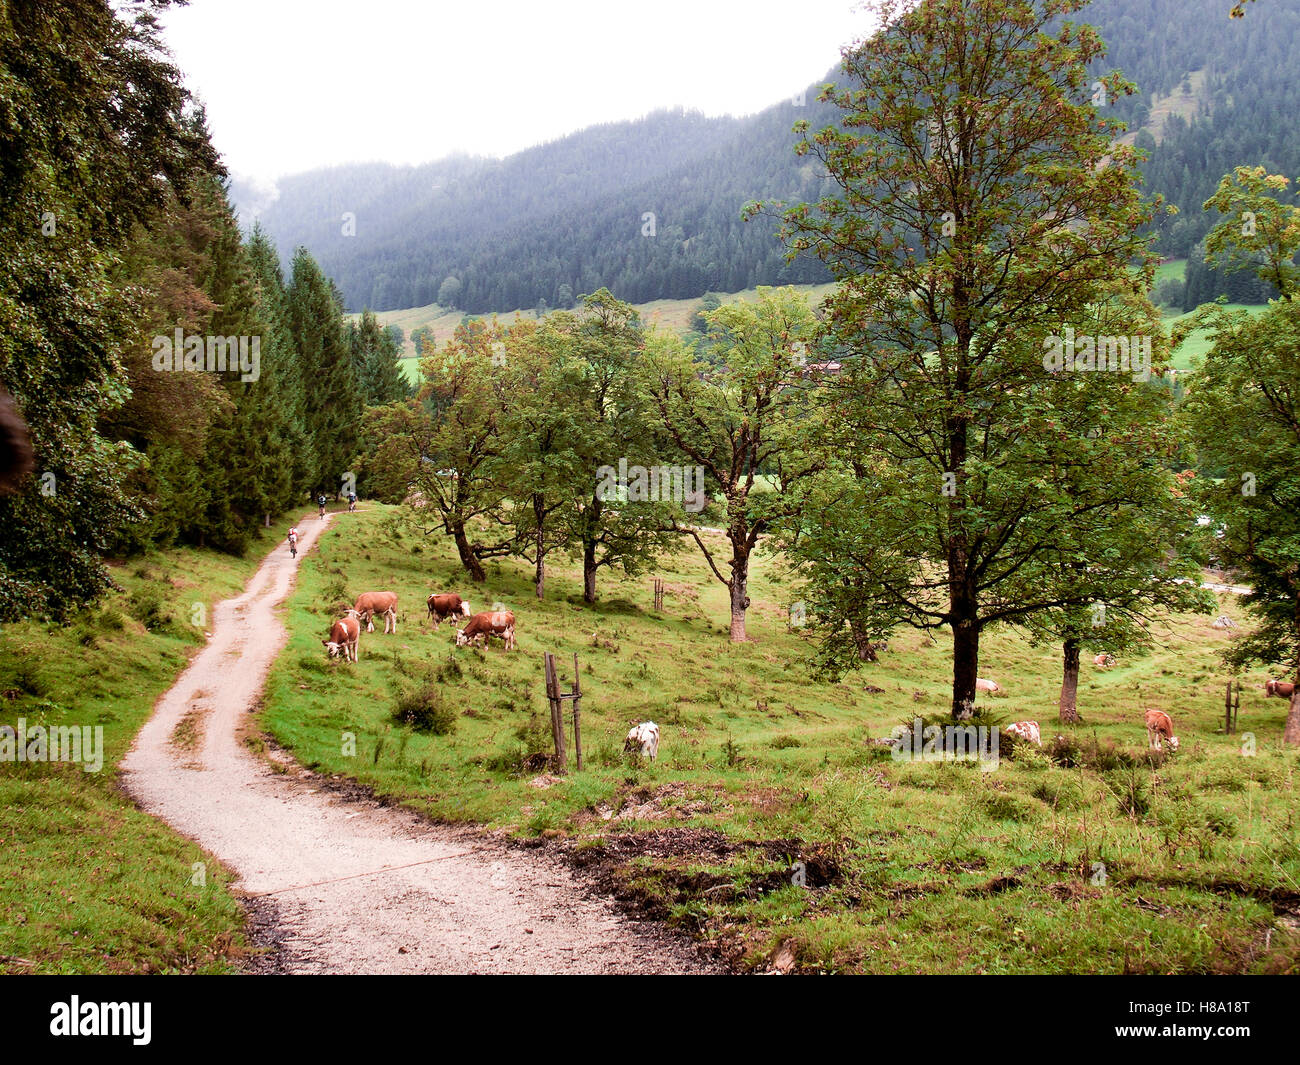 Mountain peaks shrouded in cloud and mist surrounded by evergreen forests in Austria Stock Photo